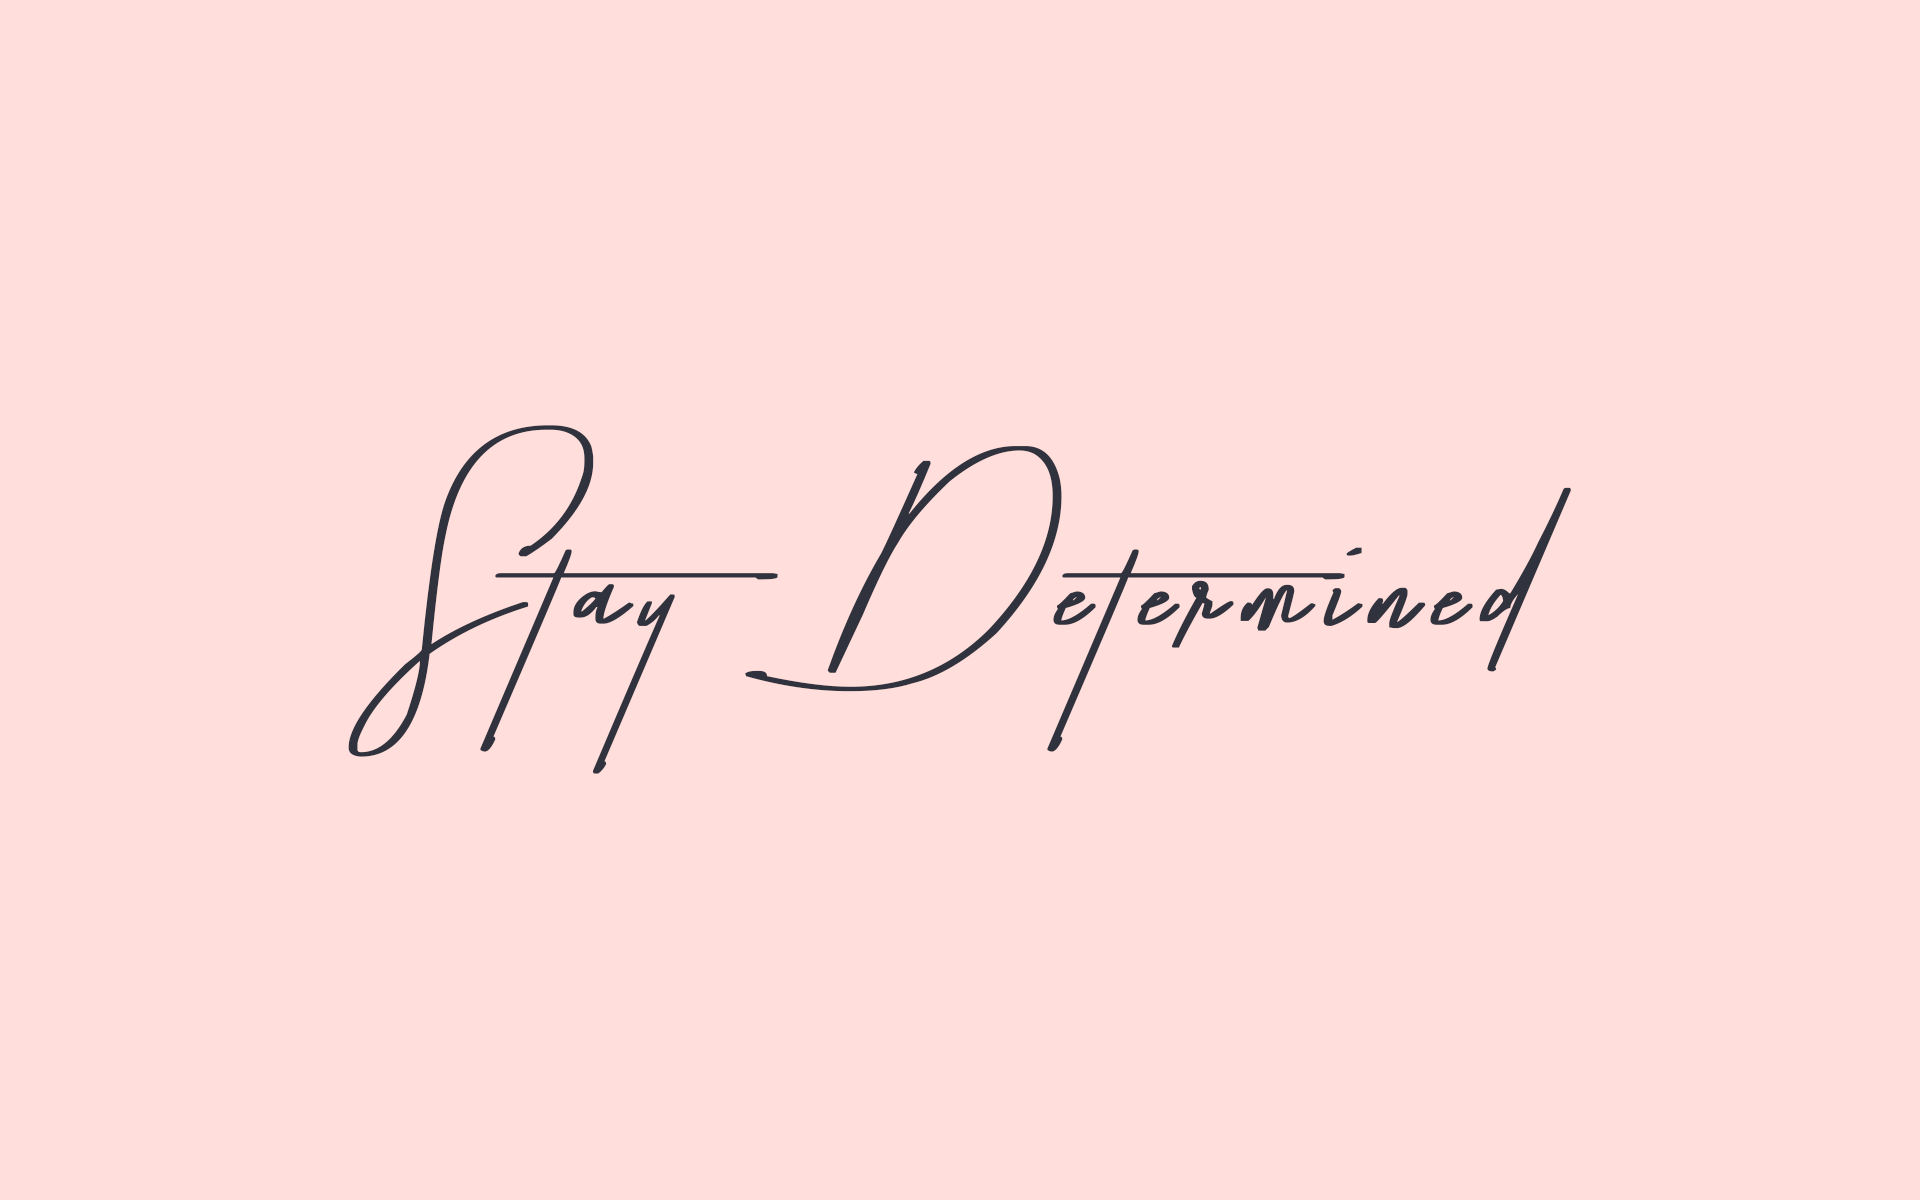 Stay Determined In 2020 Cute Desktop Wallpaper Computer Wallpaper Desktop Wallpapers Imac Wallpaper